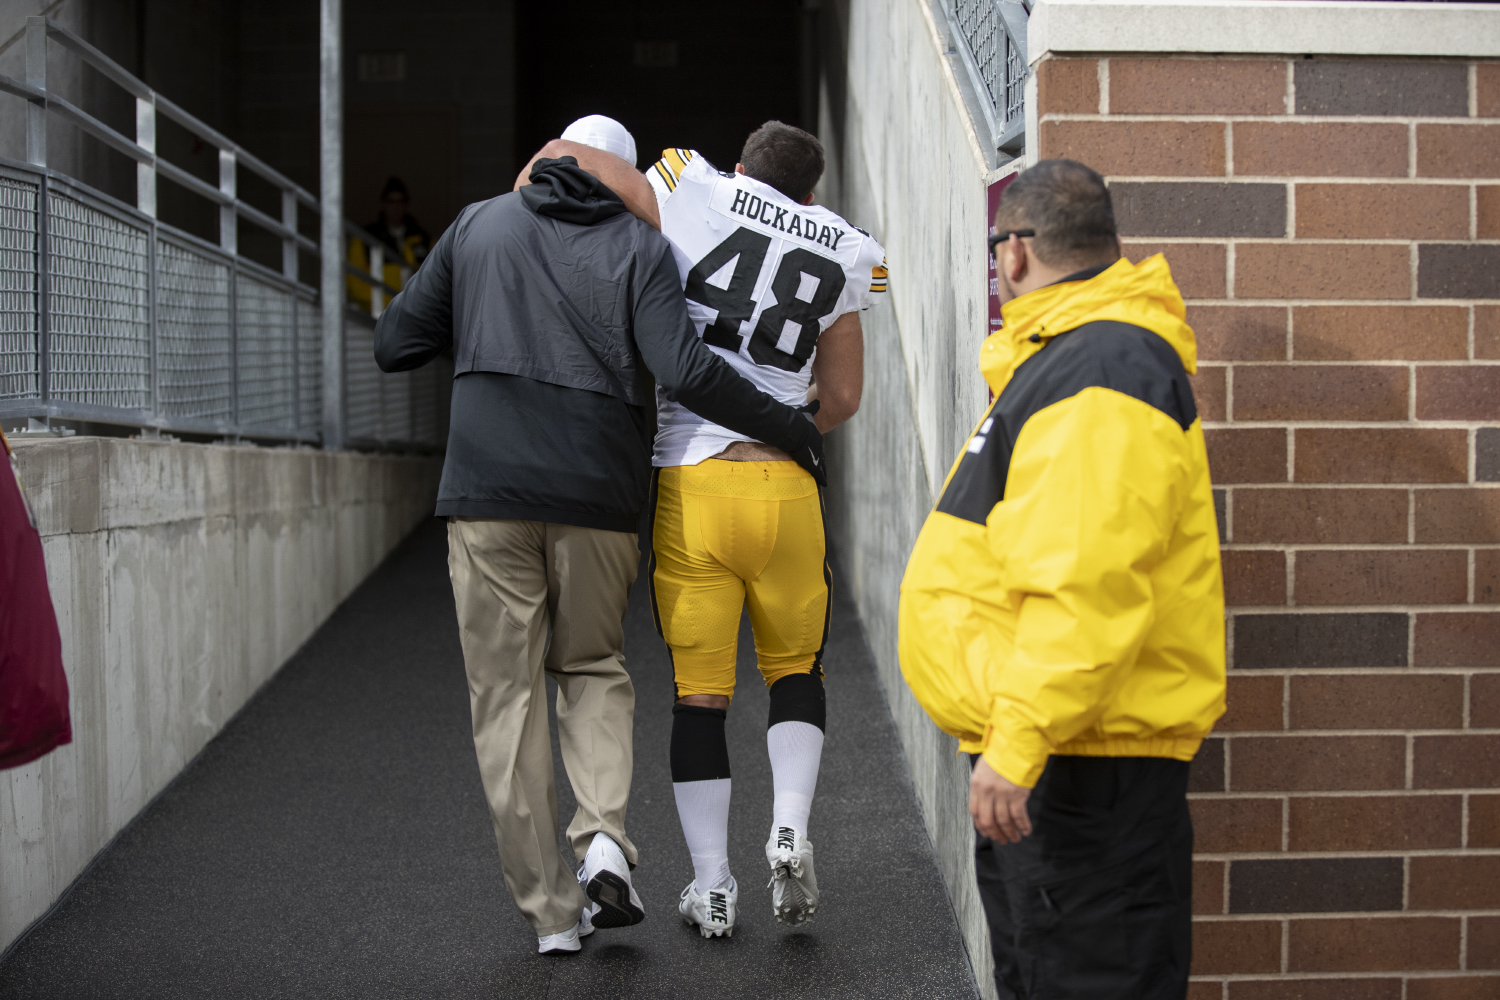 Iowa linebacker Jack Hockaday is helped off the field during Iowa's game against Minnesota at TCF Bank Stadium on Saturday, Oct. 6, 2018. The Hawkeyes defeated the Golden Gophers 48-31.